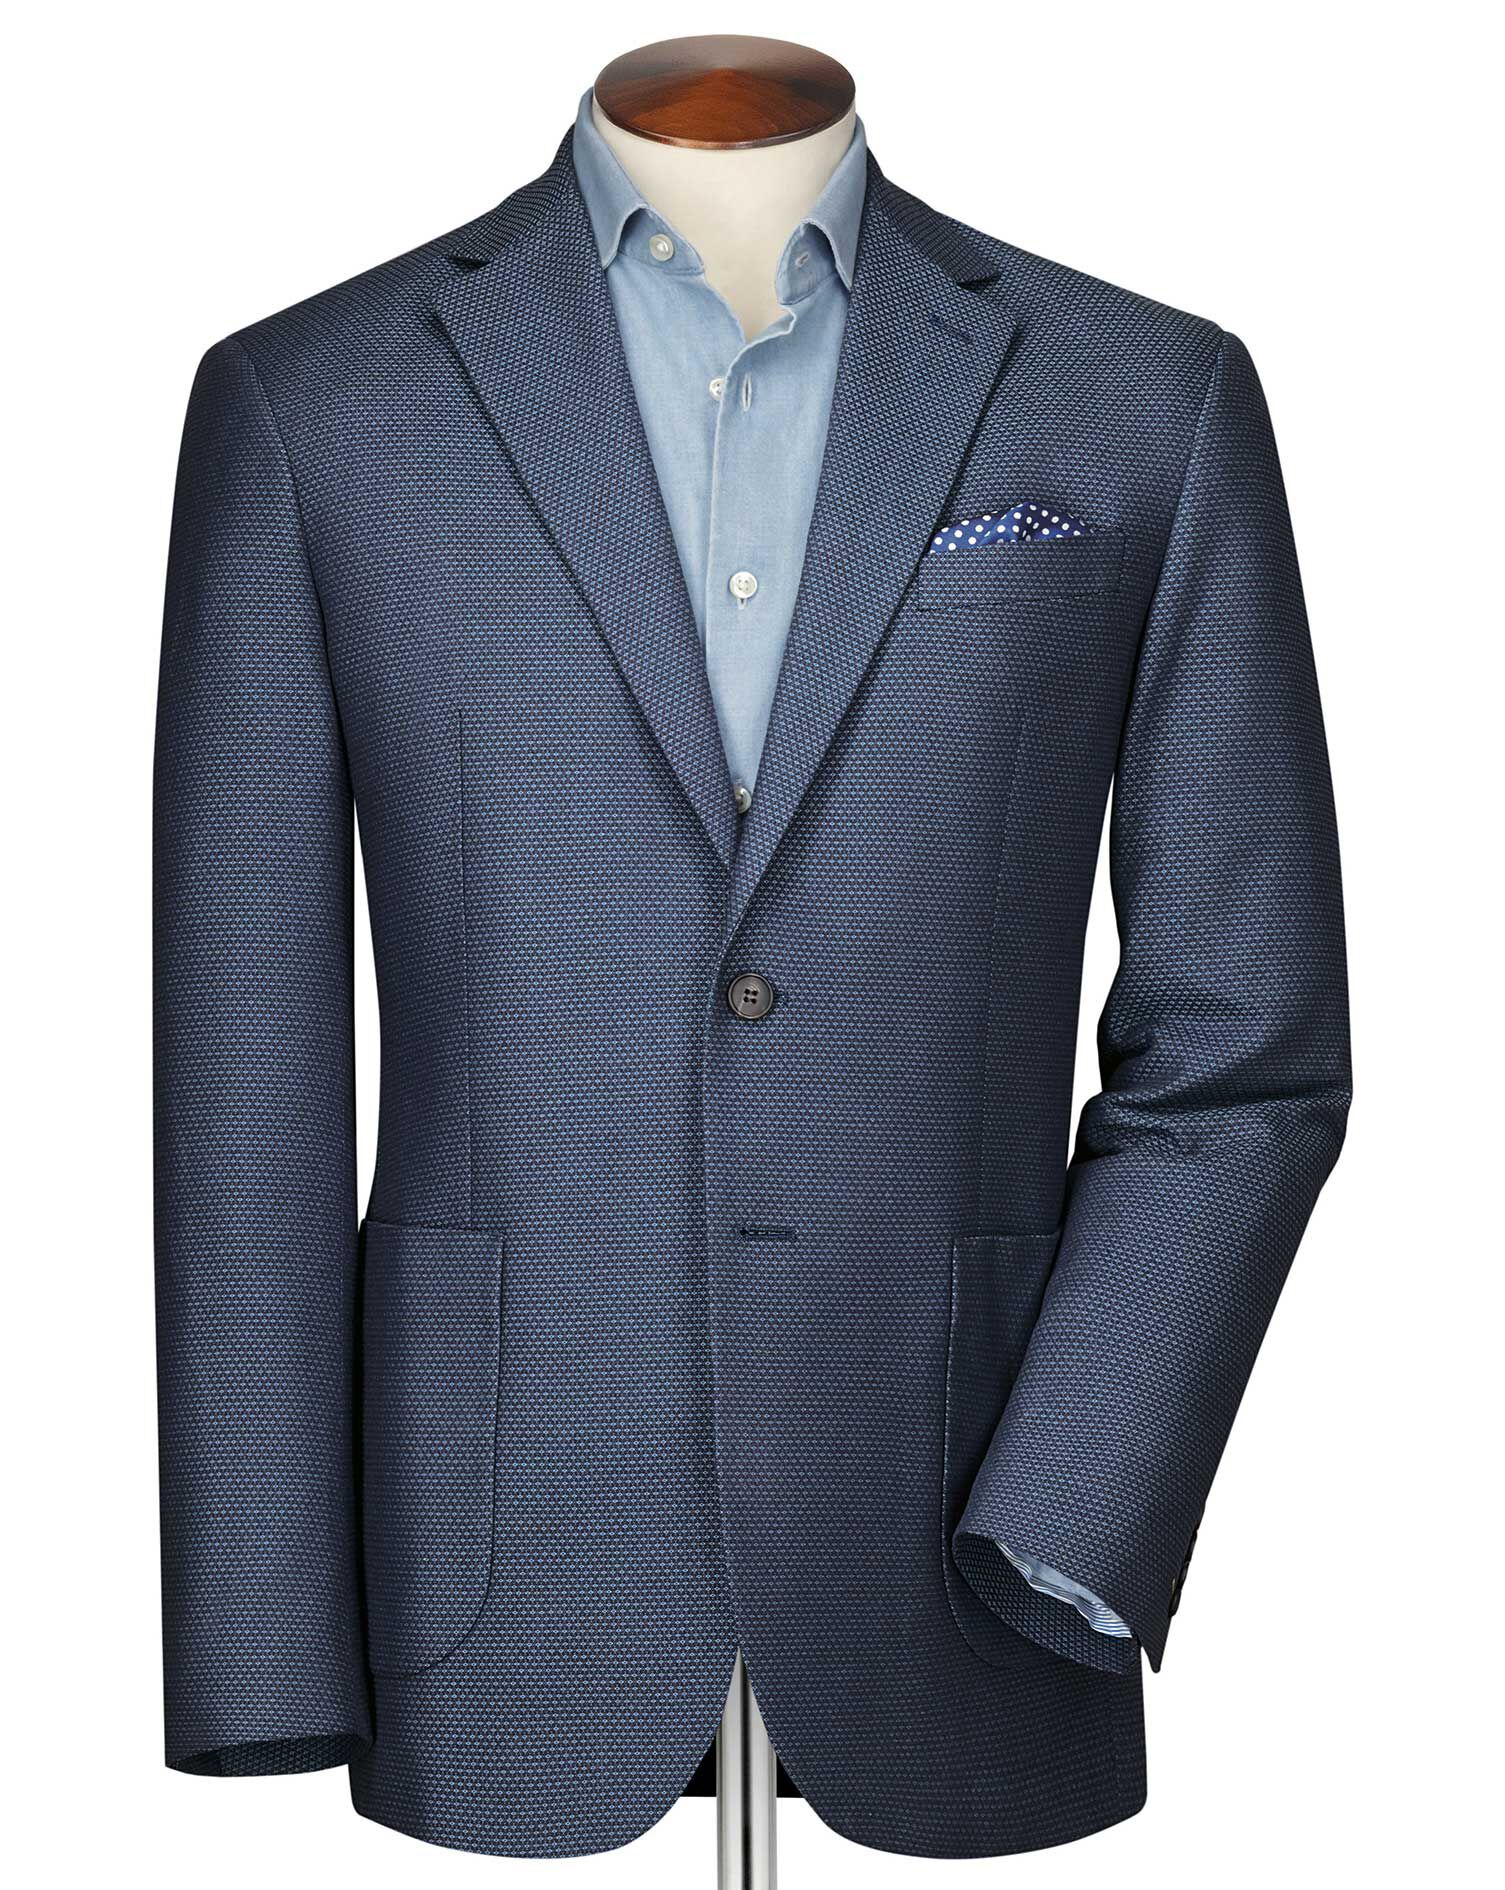 Classic Fit Blue and Sky Semi-Plain Cotton Jacket Size 40 by Charles Tyrwhitt